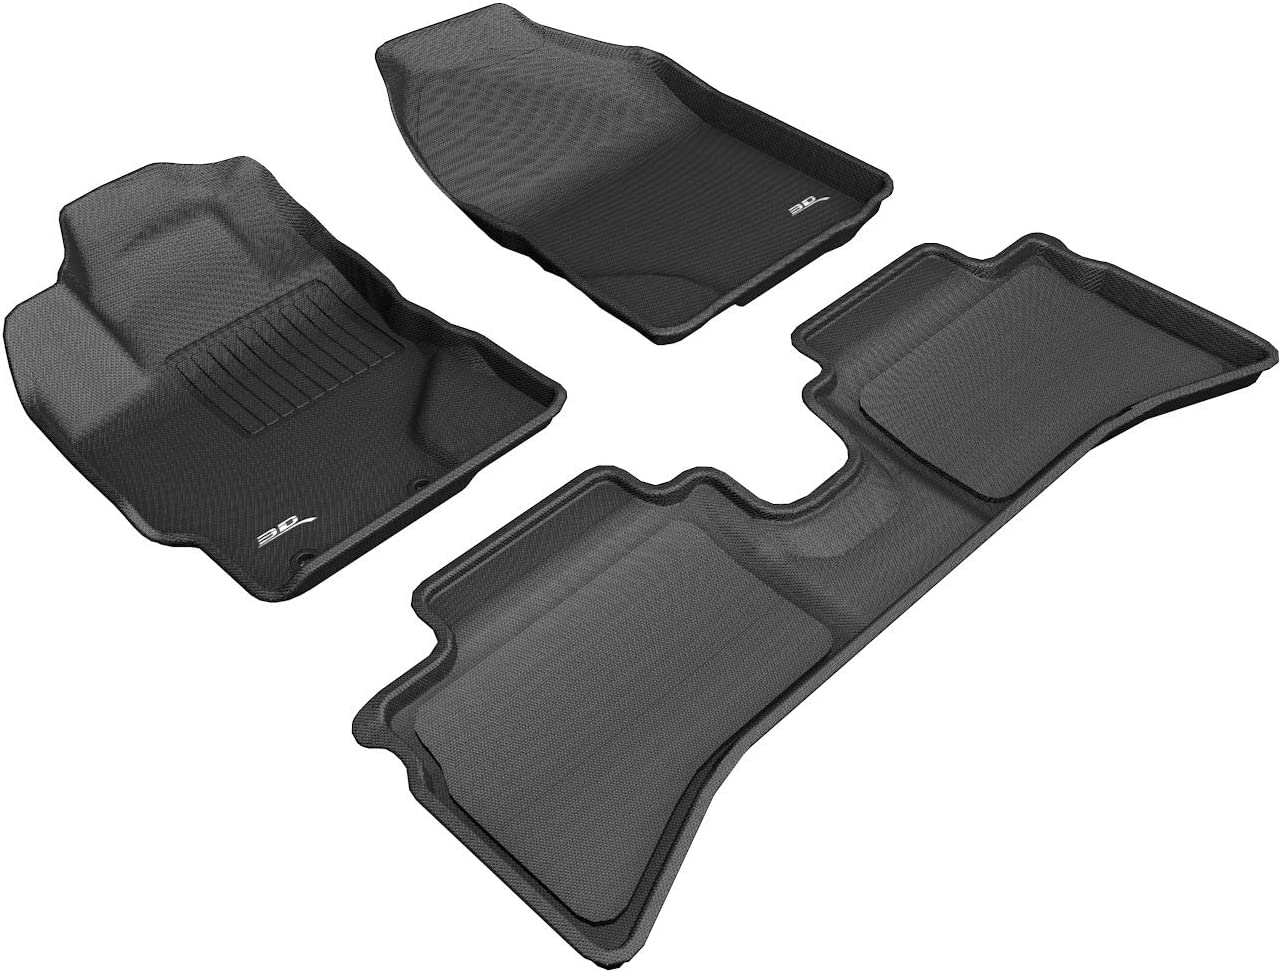 Toyota Prius 3 x Piece 2012-2015 Fully Tailored carpet Car Mats in Black.